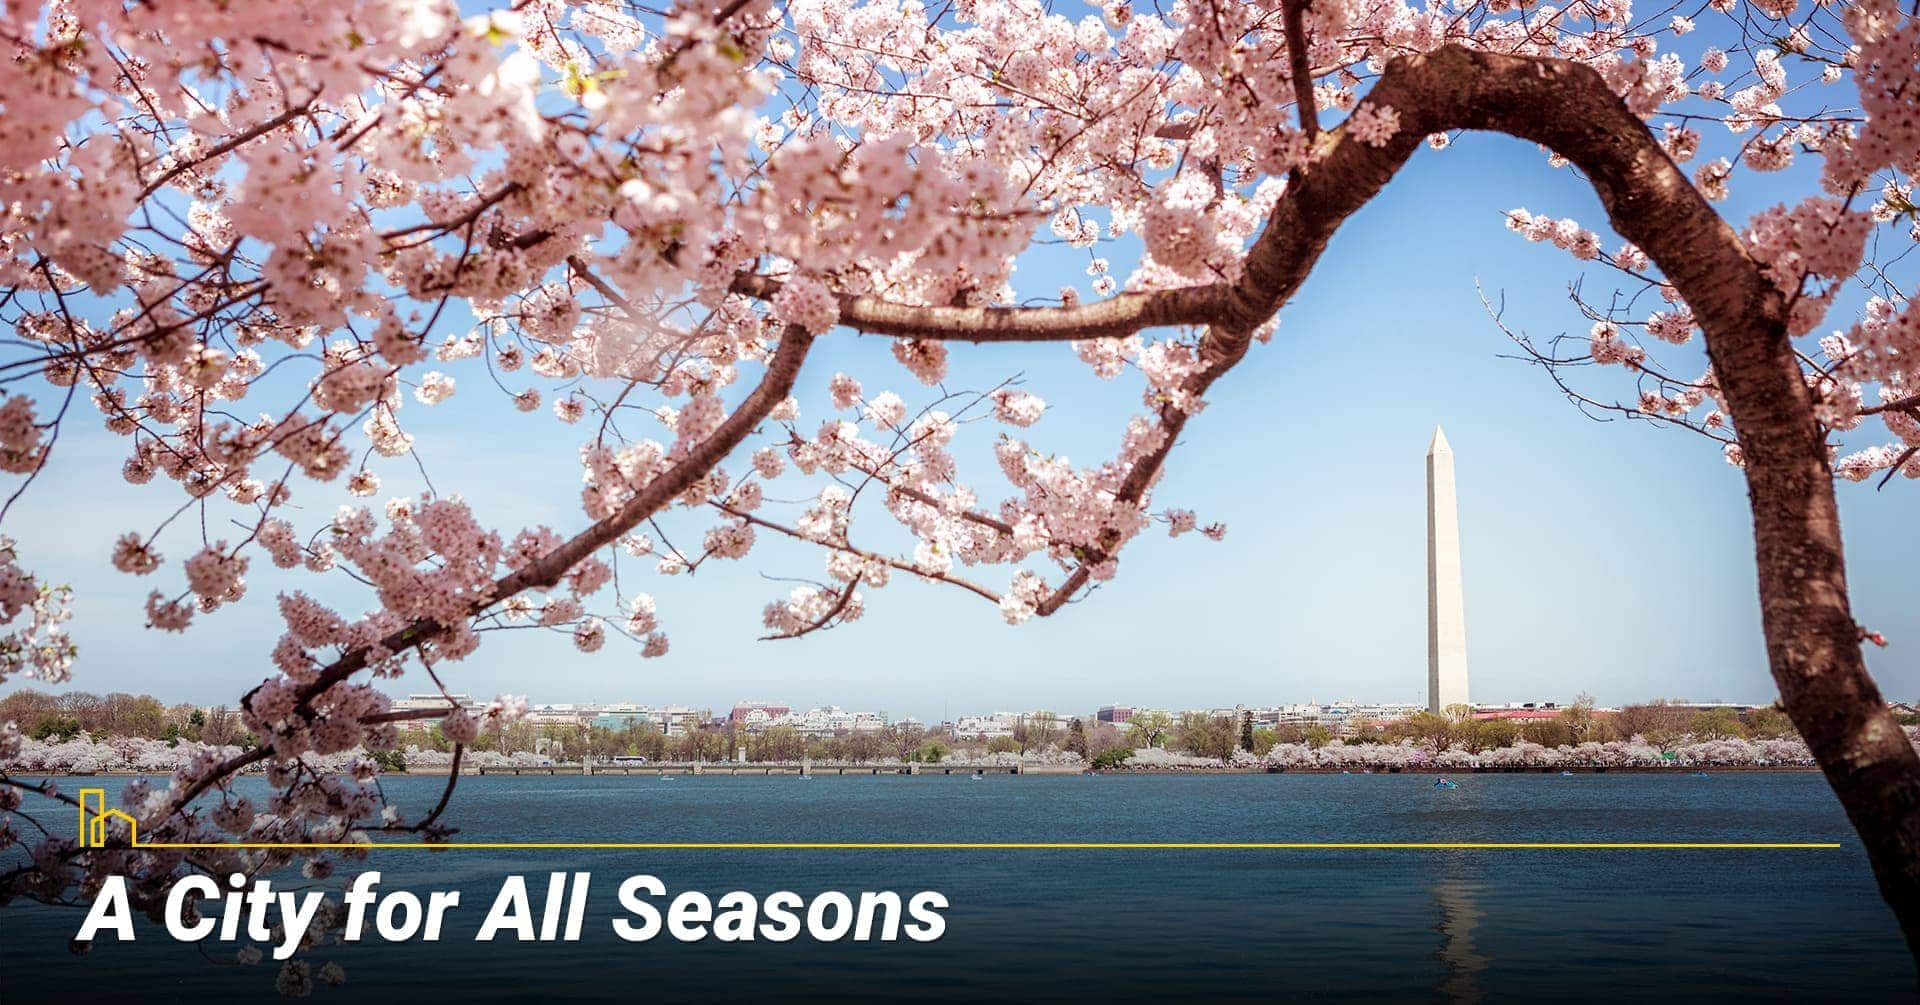 A City for All Seasons in Washington, DC